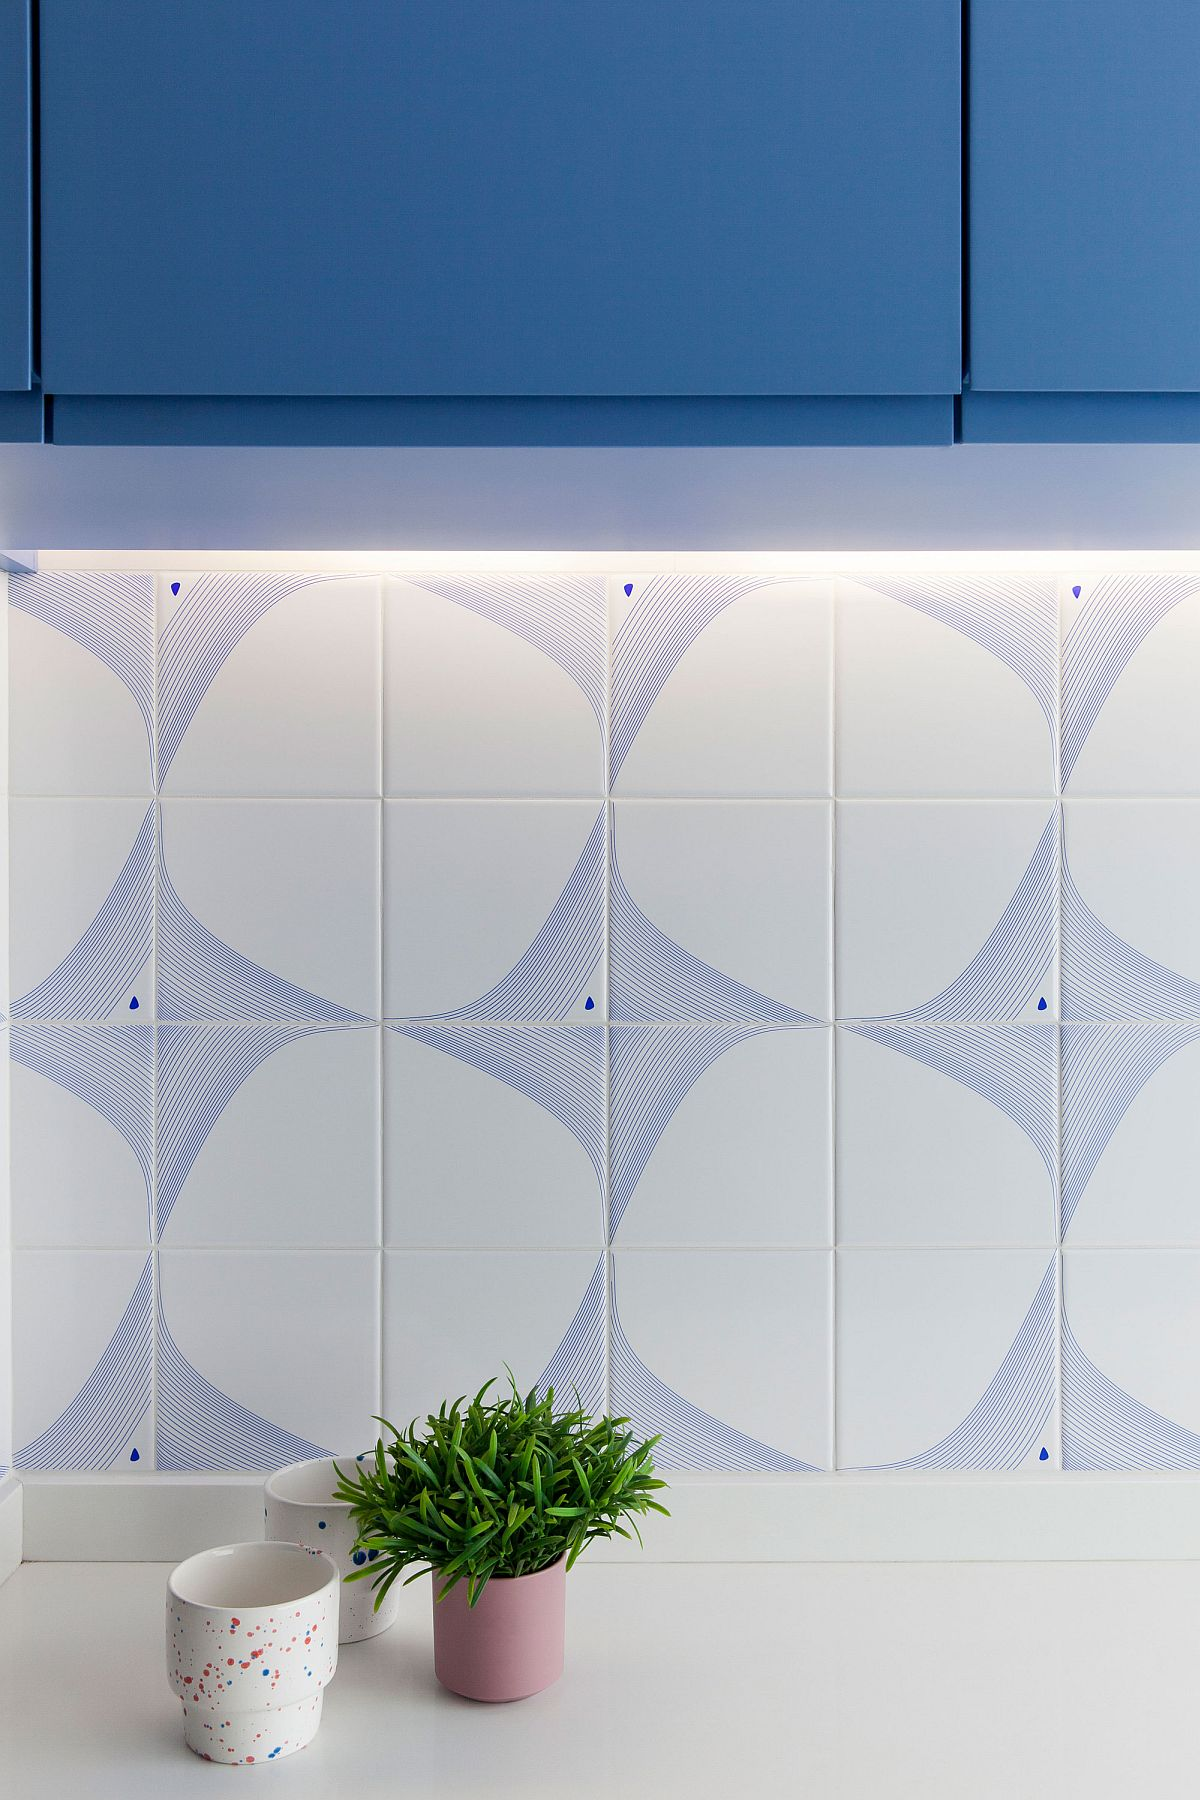 Kitchen backsplash in blue and white with 3D pattern